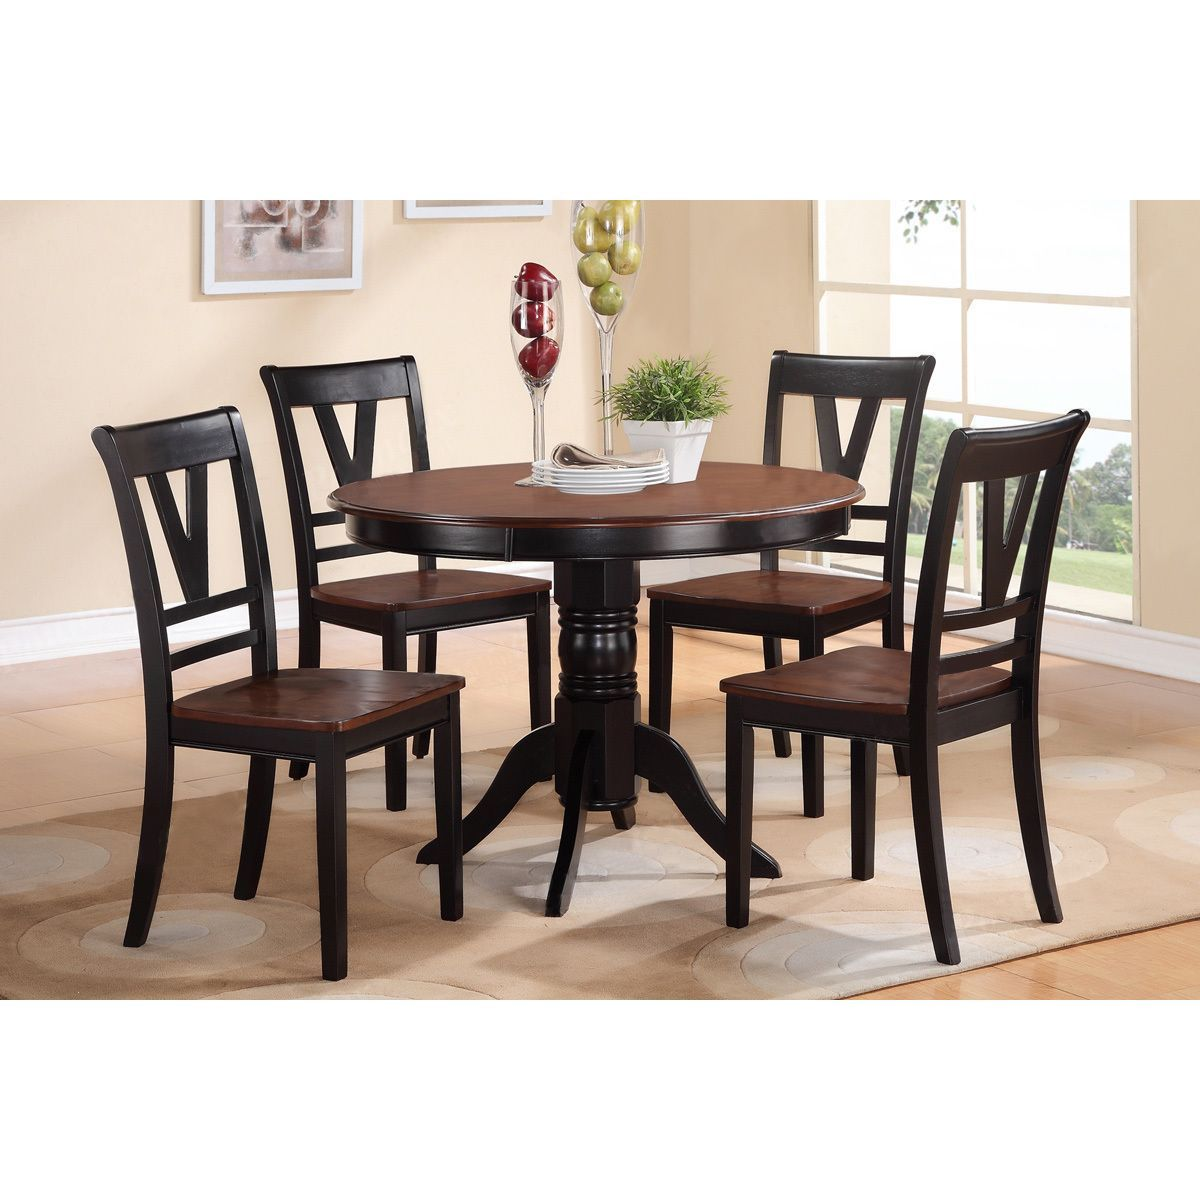 Dayten 5 Piece Dining Set Ping The Best Deals On Sets